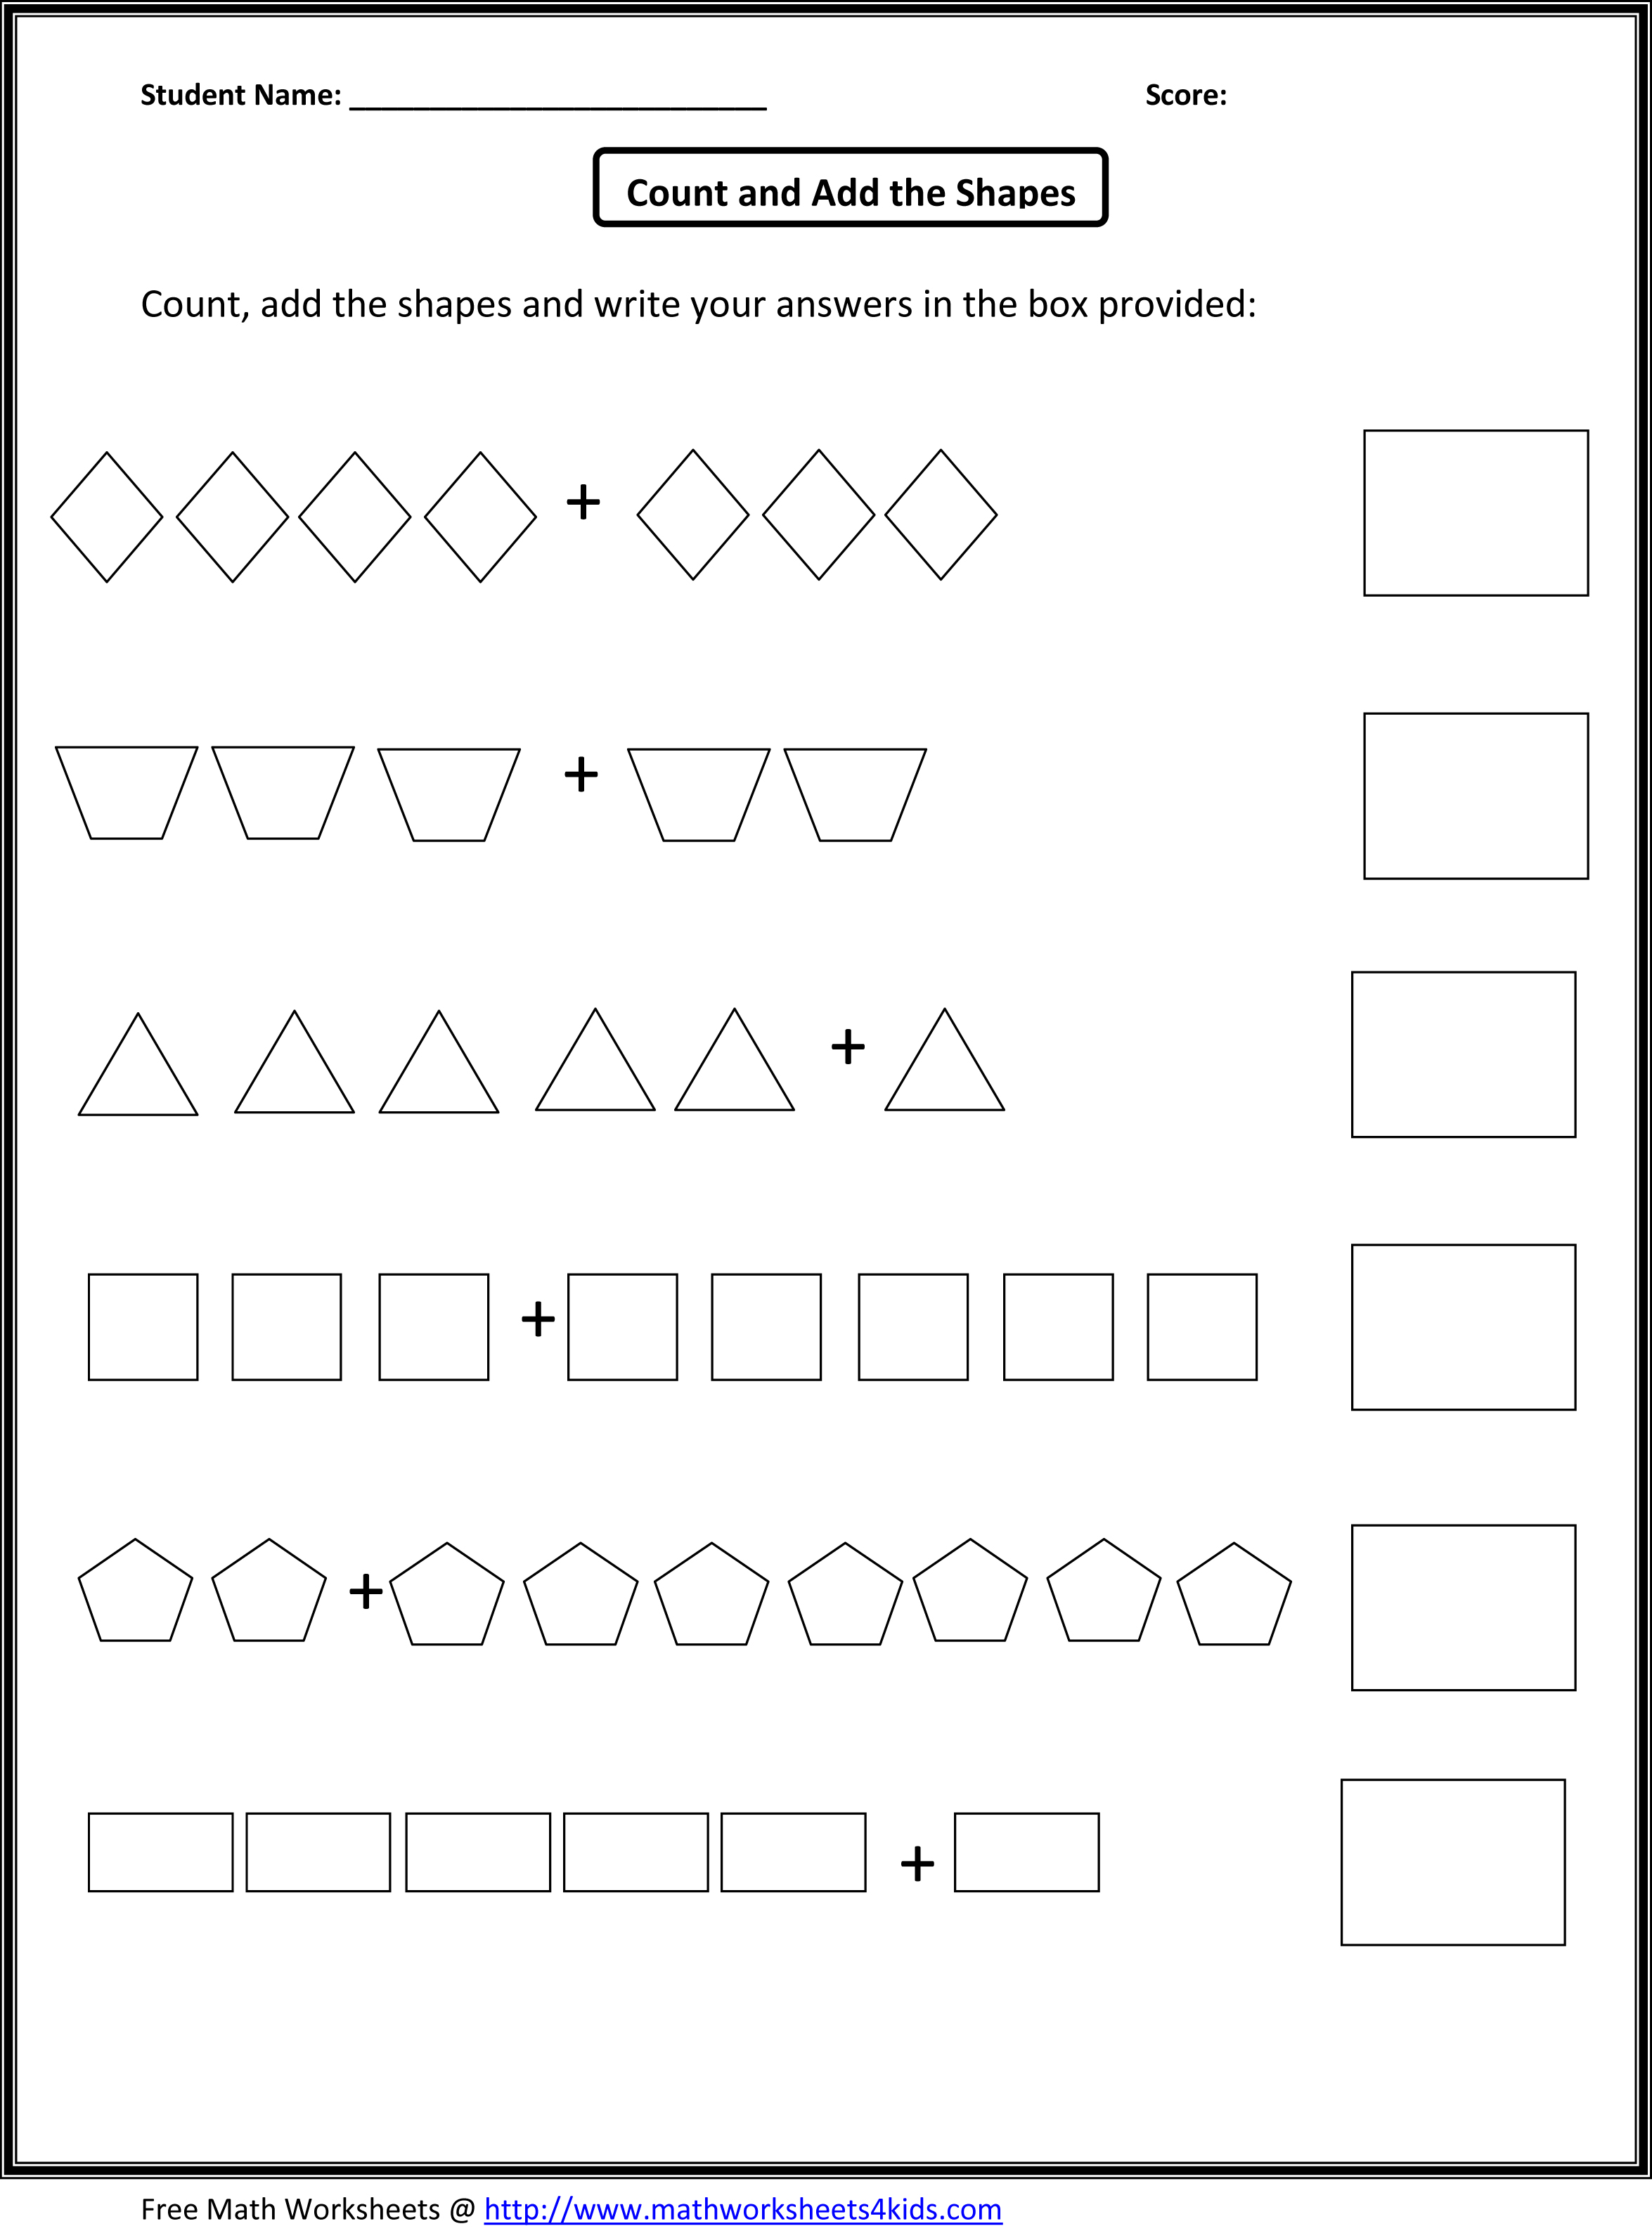 Adding Worksheets For Kindergarten Thworksheets4kids Images